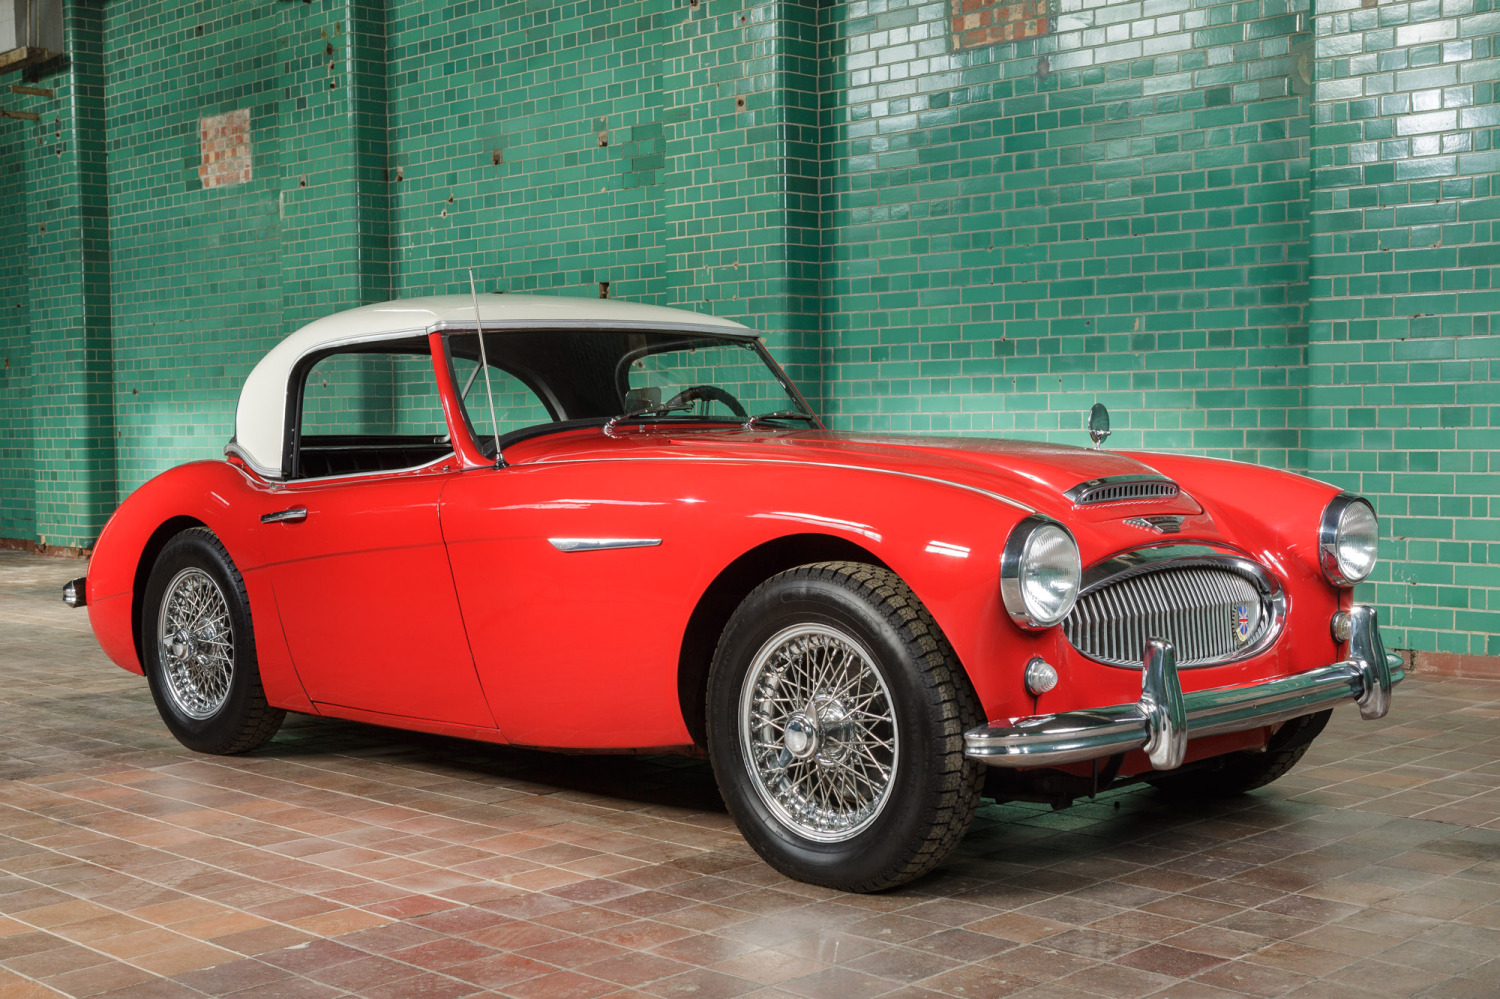 1961 Austin Healey 3000 MKII      Pendine Historic Cars     chassis HBT 16625 was built in November 1961  arriving in Texas in  early 1962  An exceptionally straight example of the great Austin Healey  3000